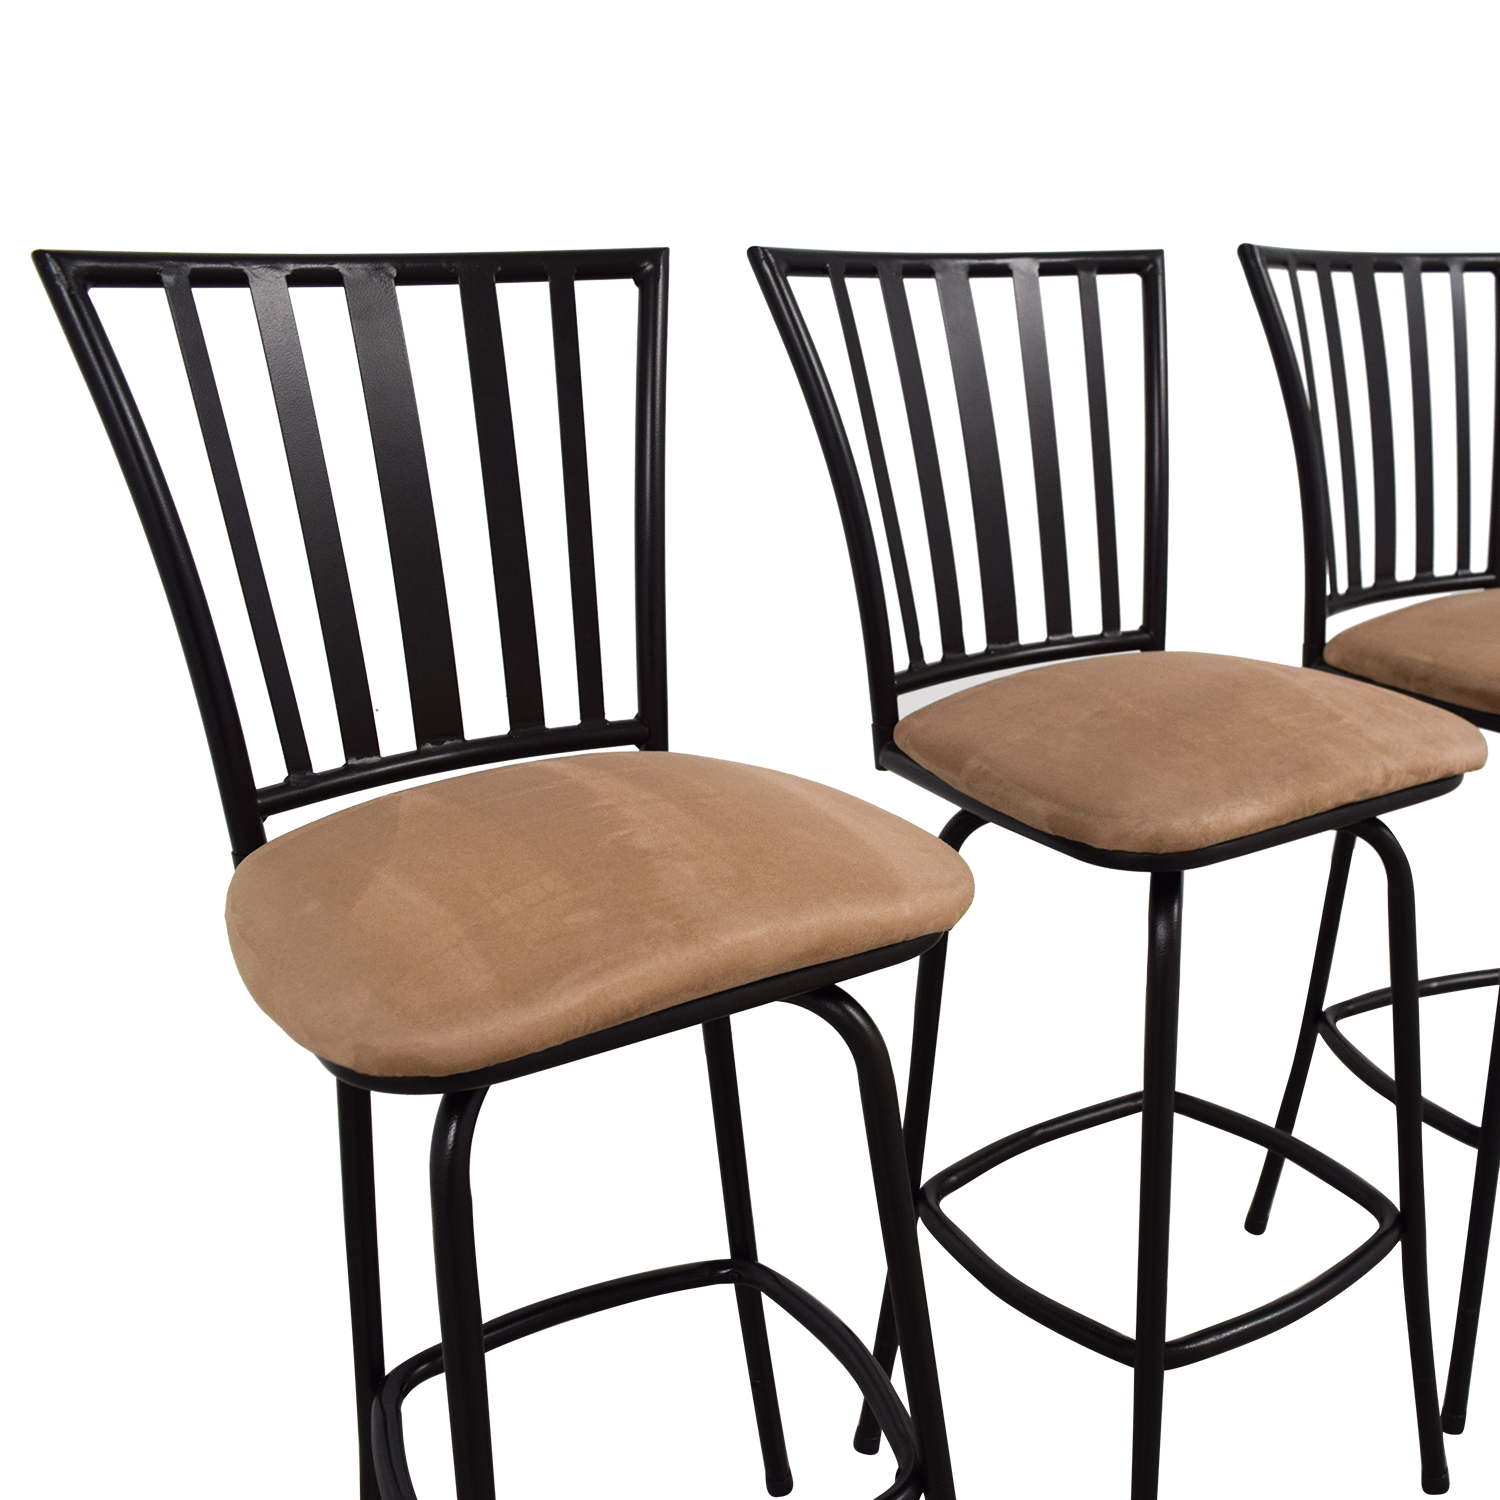 Tan Upholstered Stools with Black Frame tan